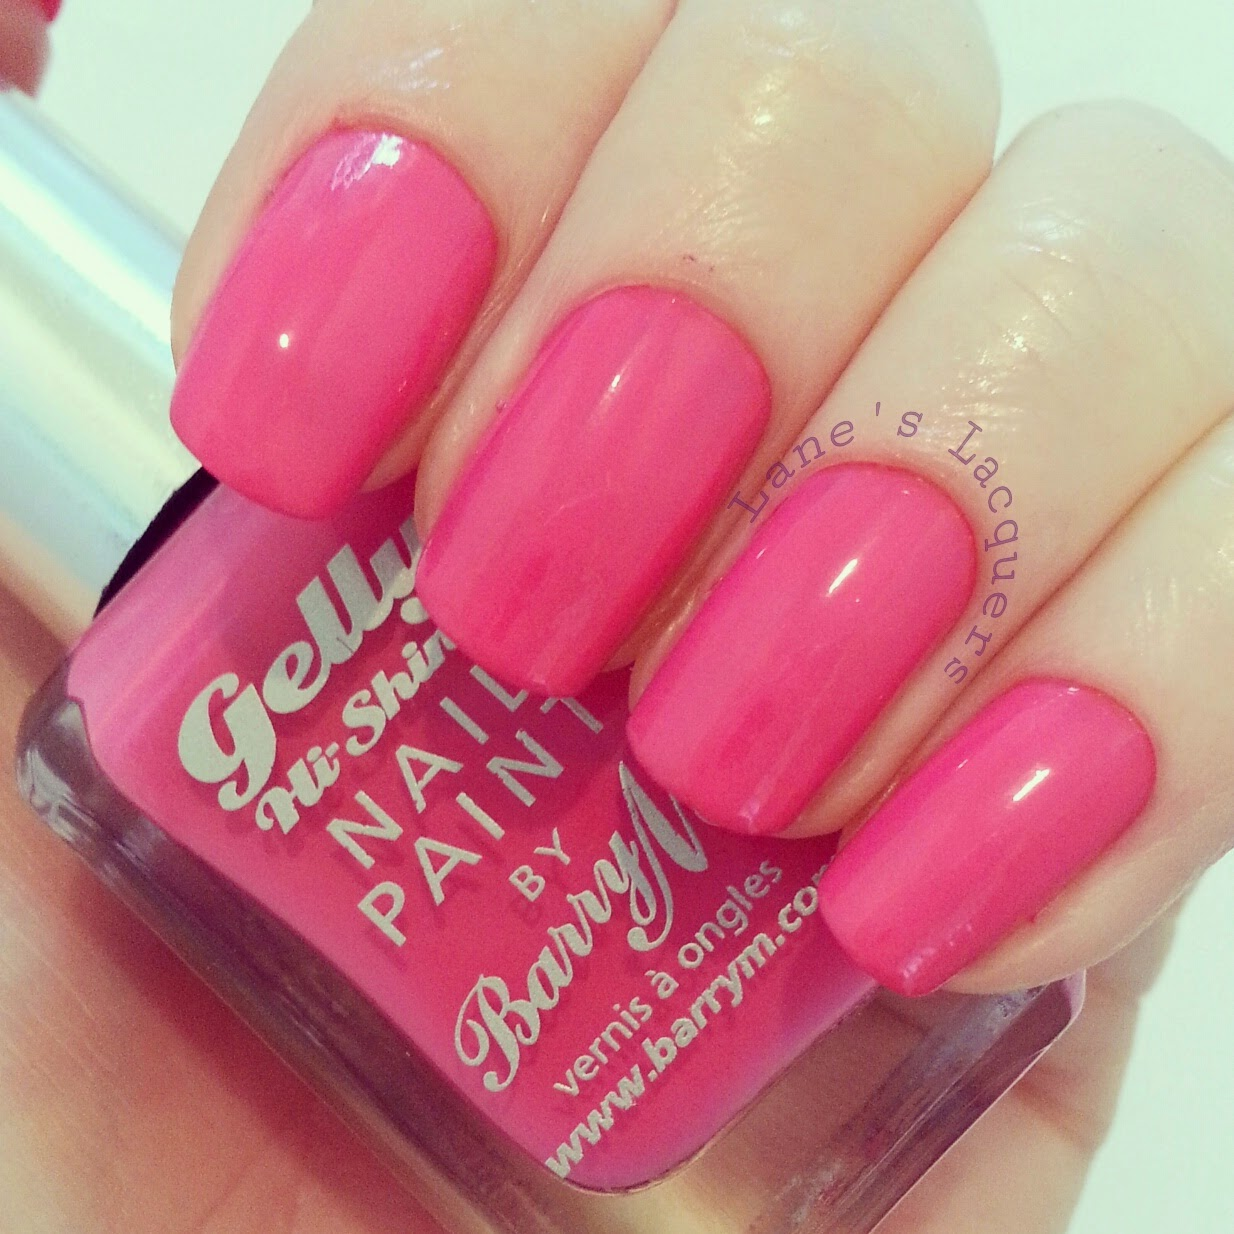 barry-m-summer-gelly-pink-punch-swatch-nails